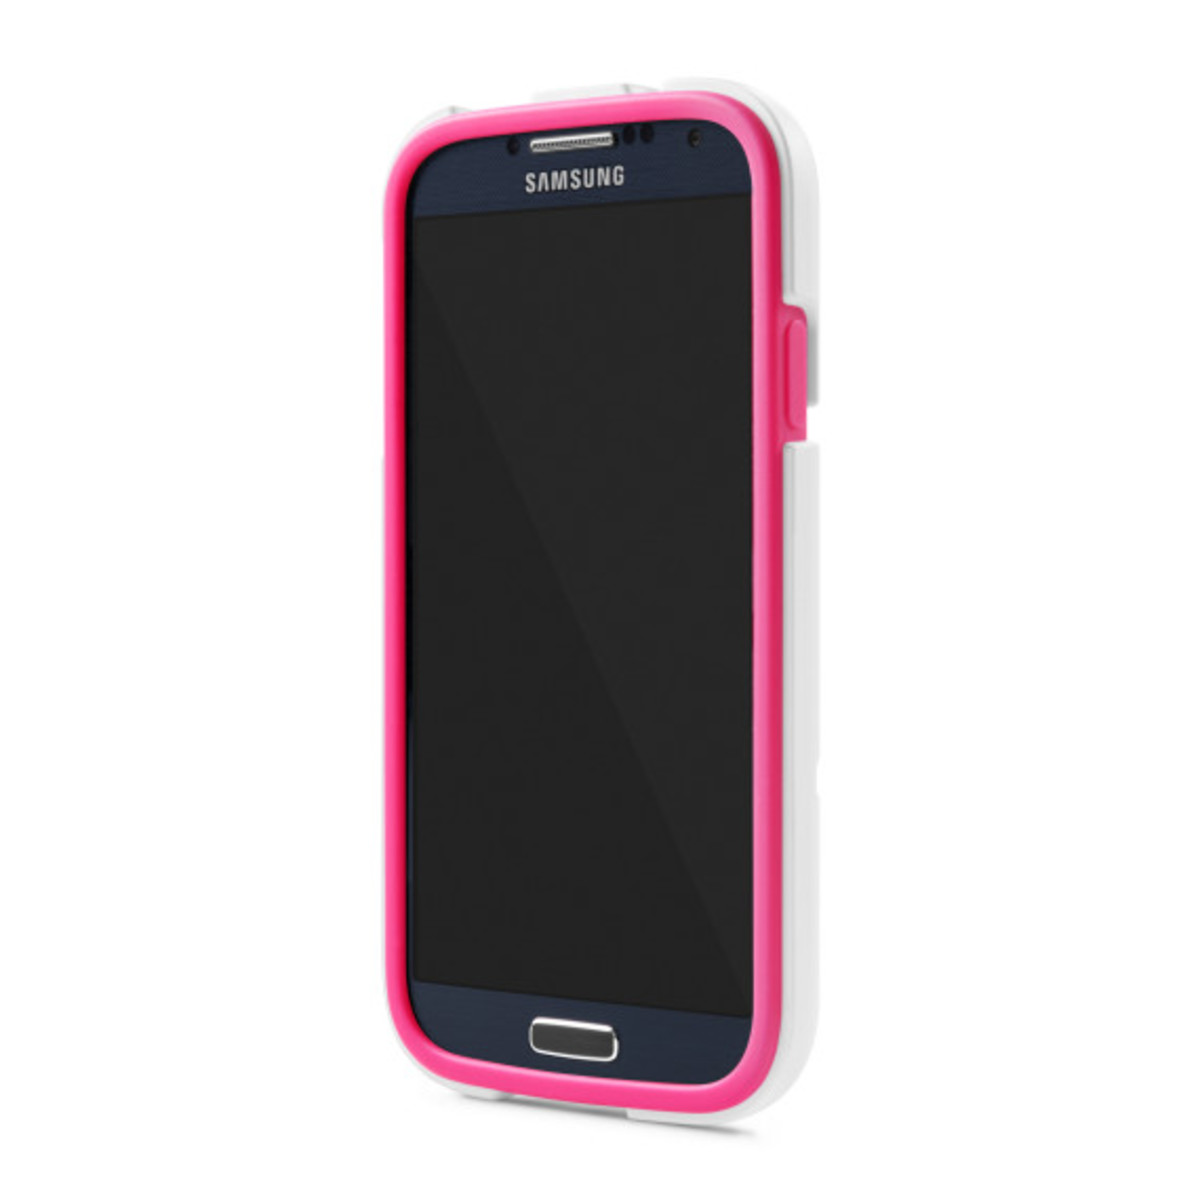 incase-samsung-galaxy-s4-systm-chisel-white-pink-3